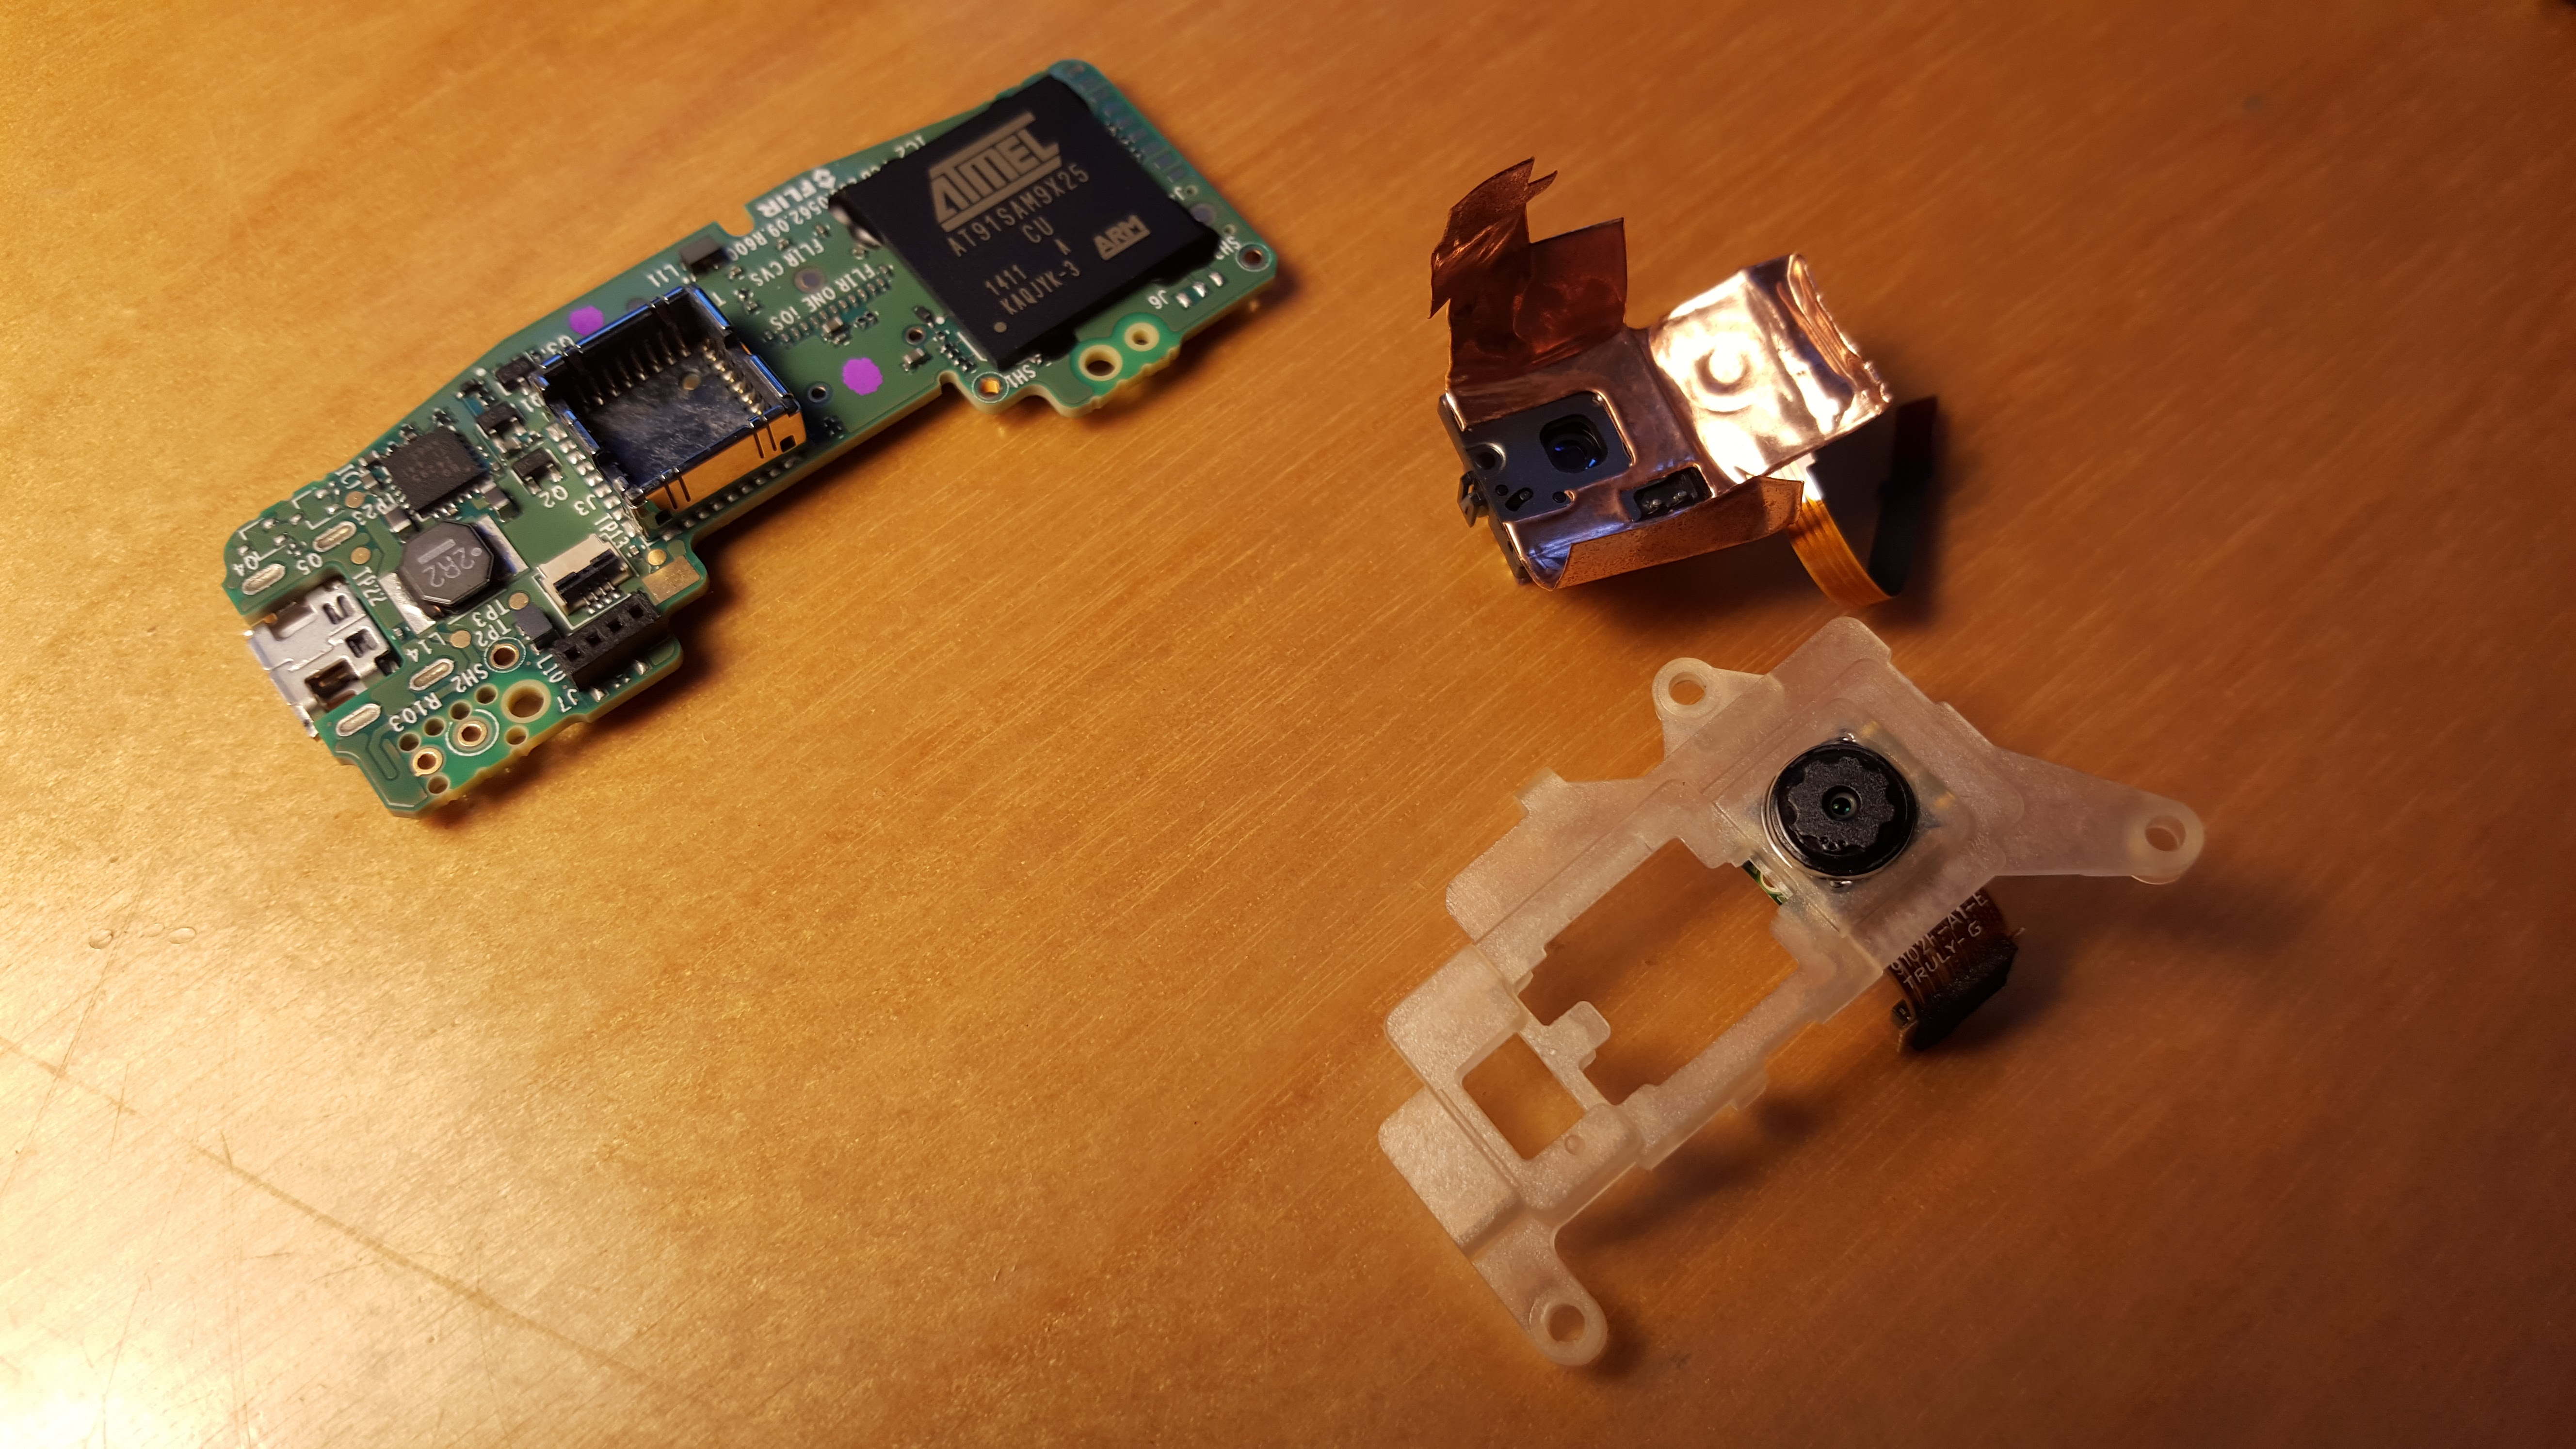 Teardown and Review: Flir One for Android | hardtechlife